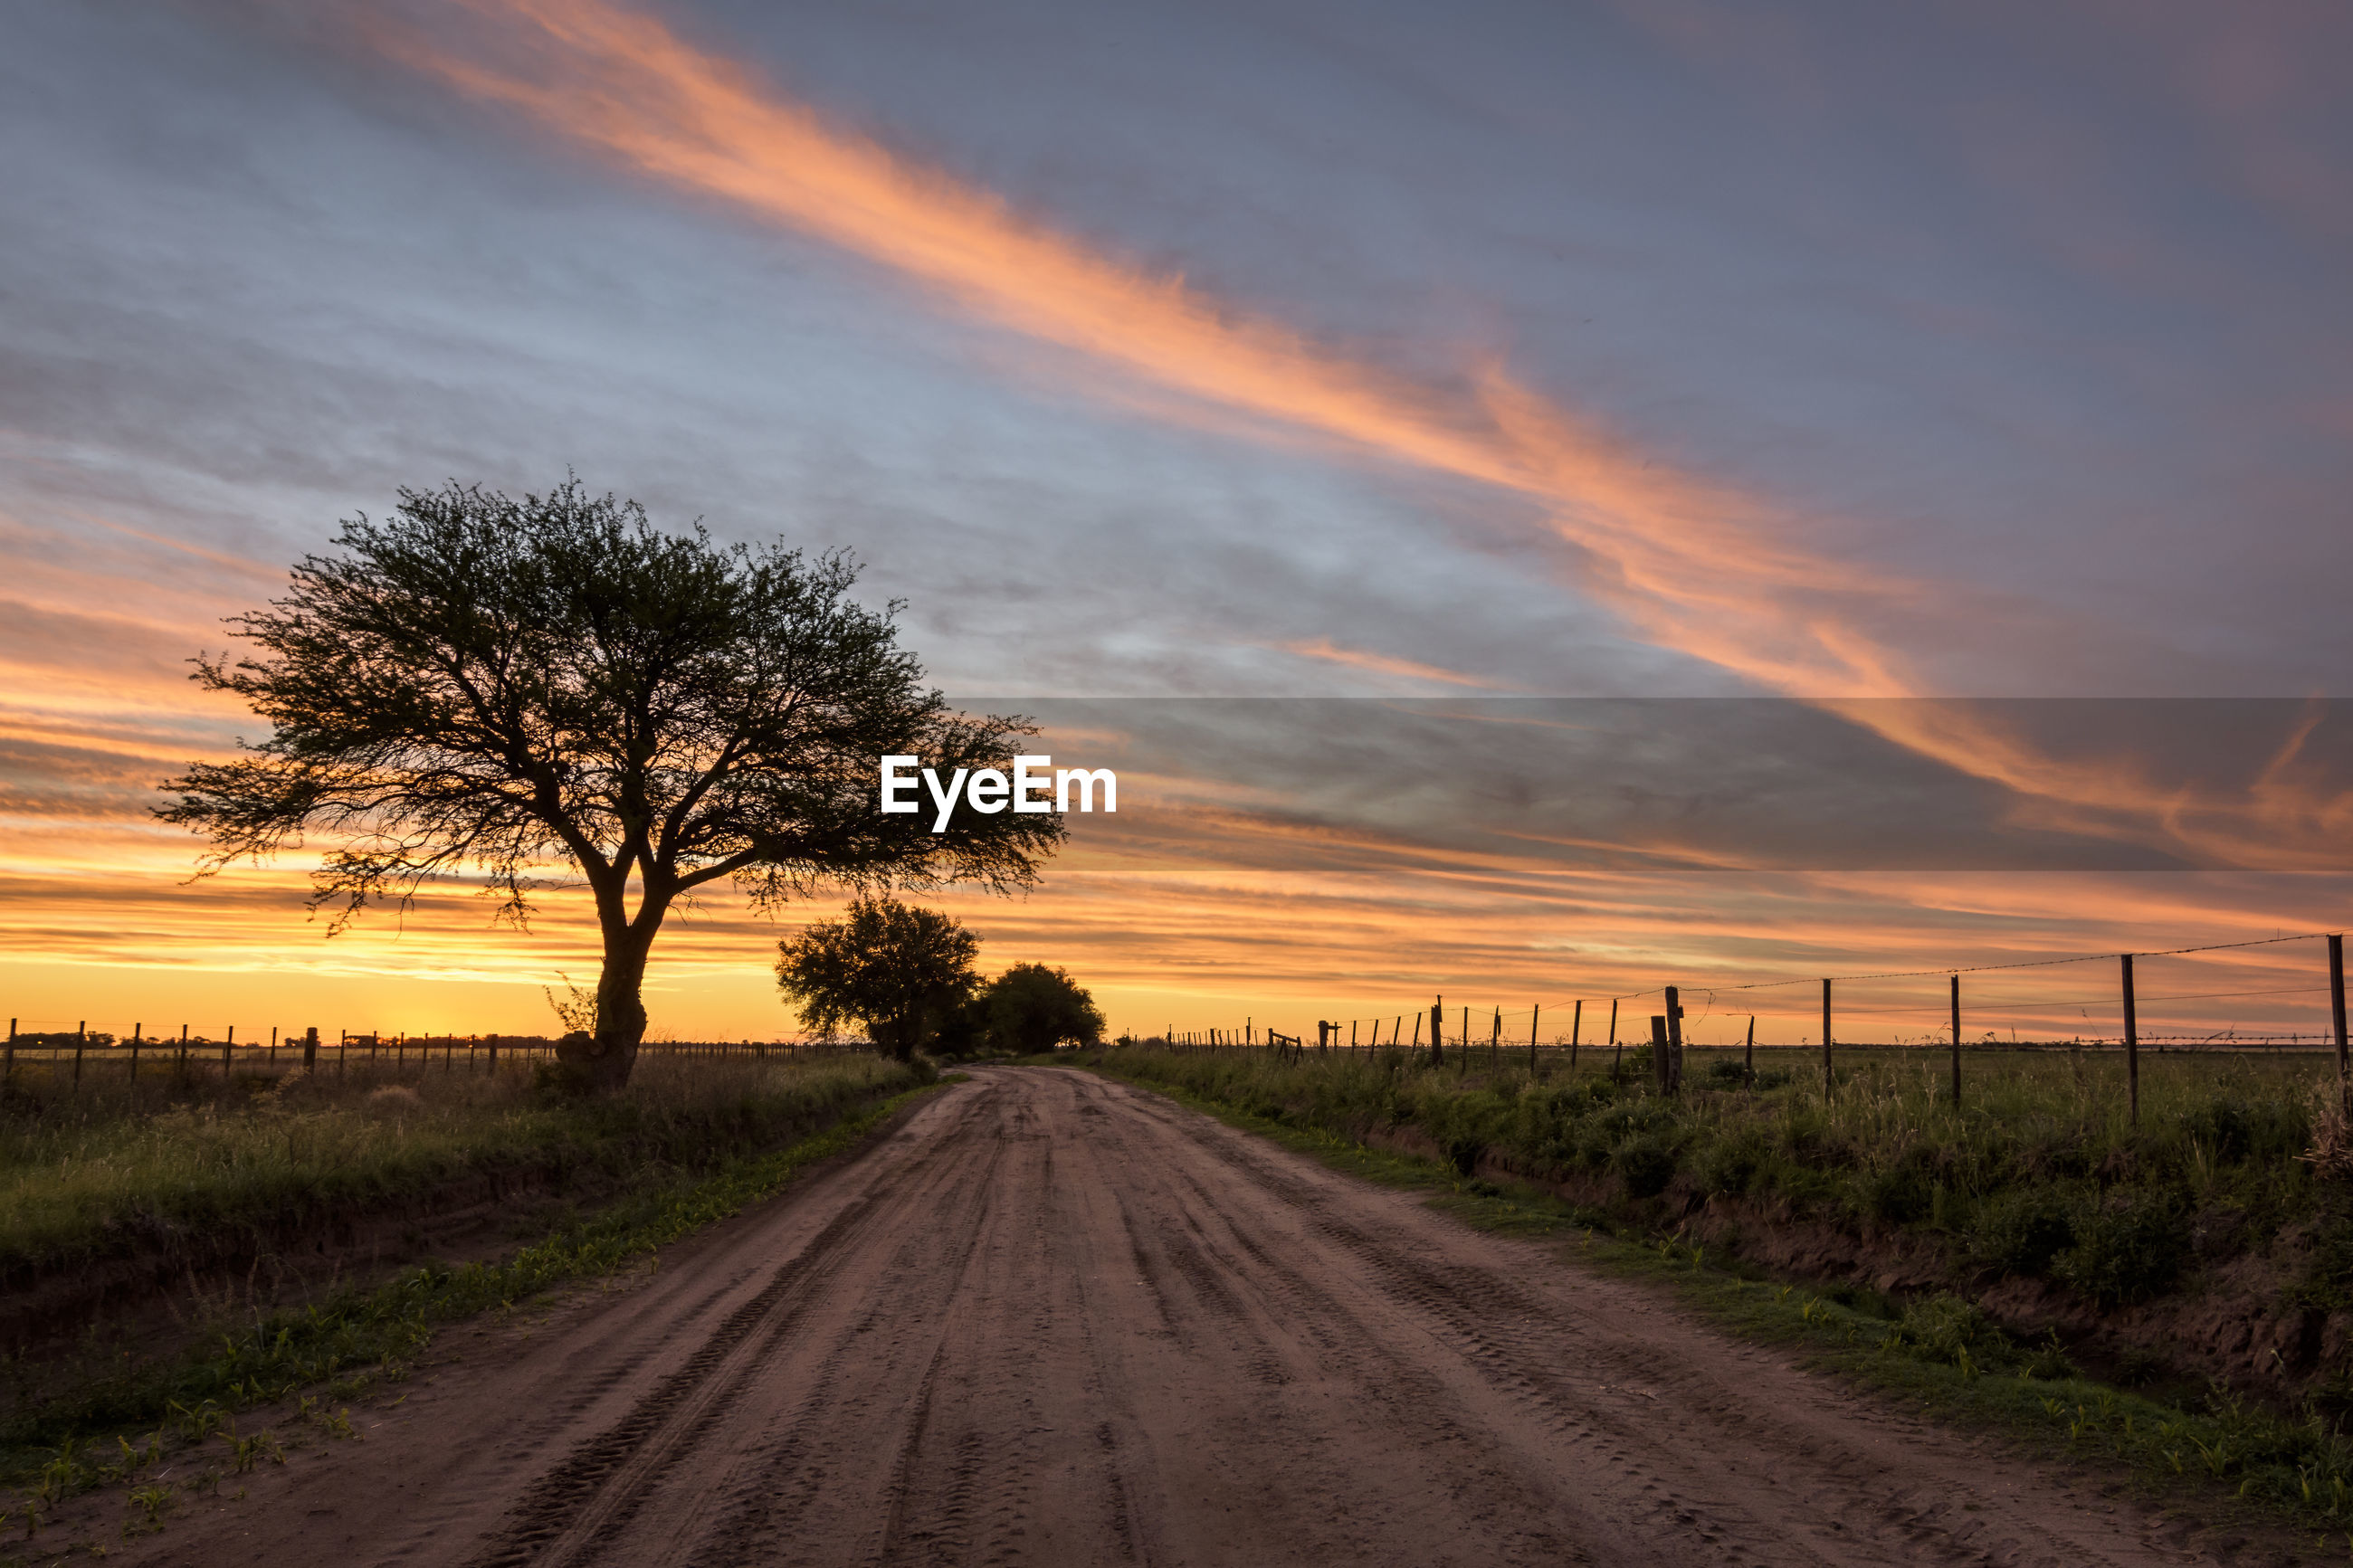 Dirt road against dramatic sky during sunset